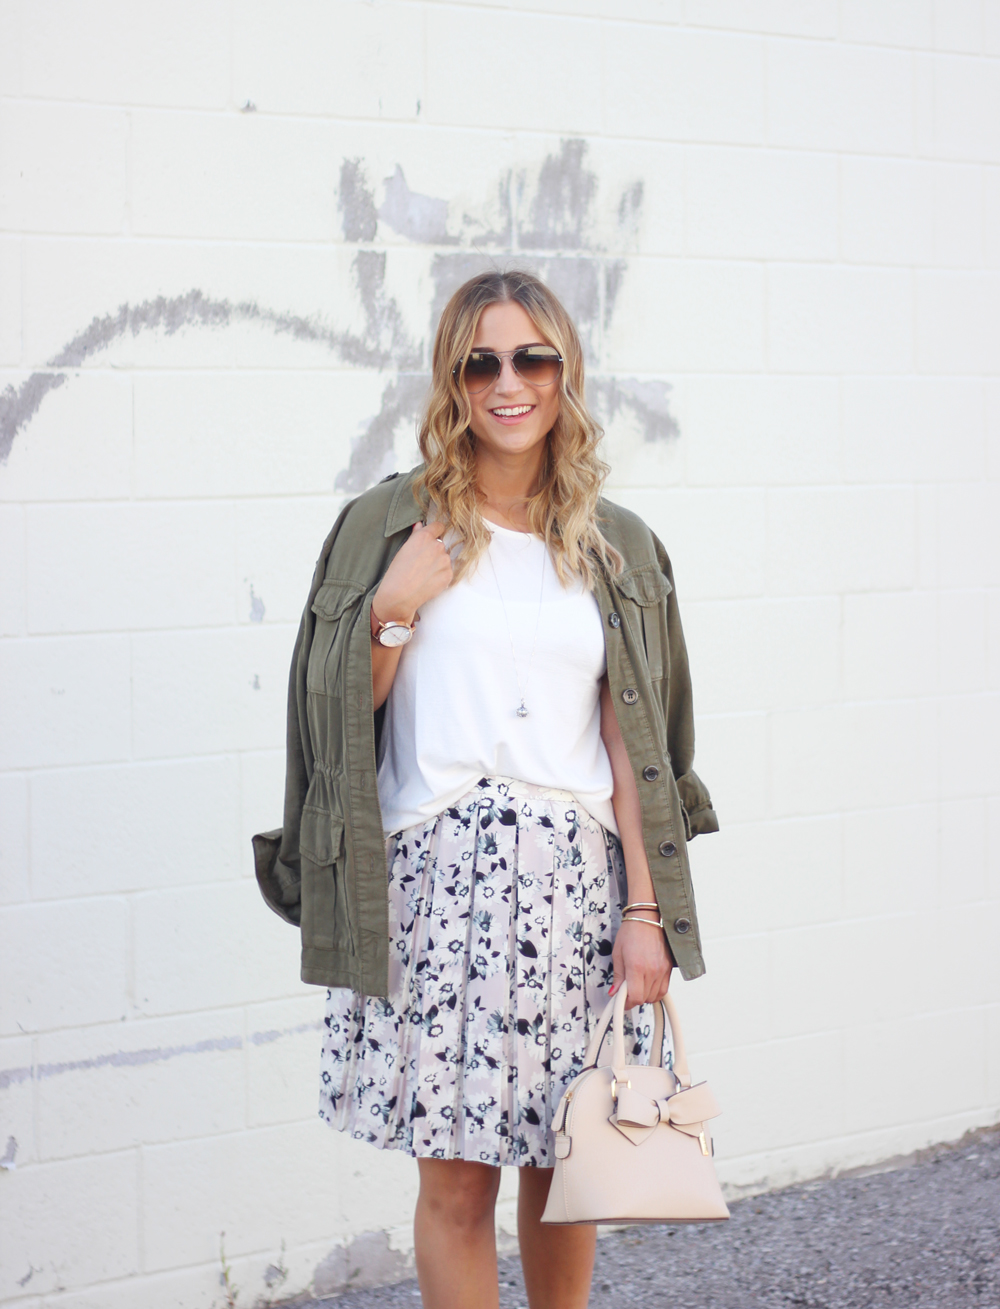 Topshop Utility Jacket and Banana Republic Floral Skirt, softspun knit tank from Gap